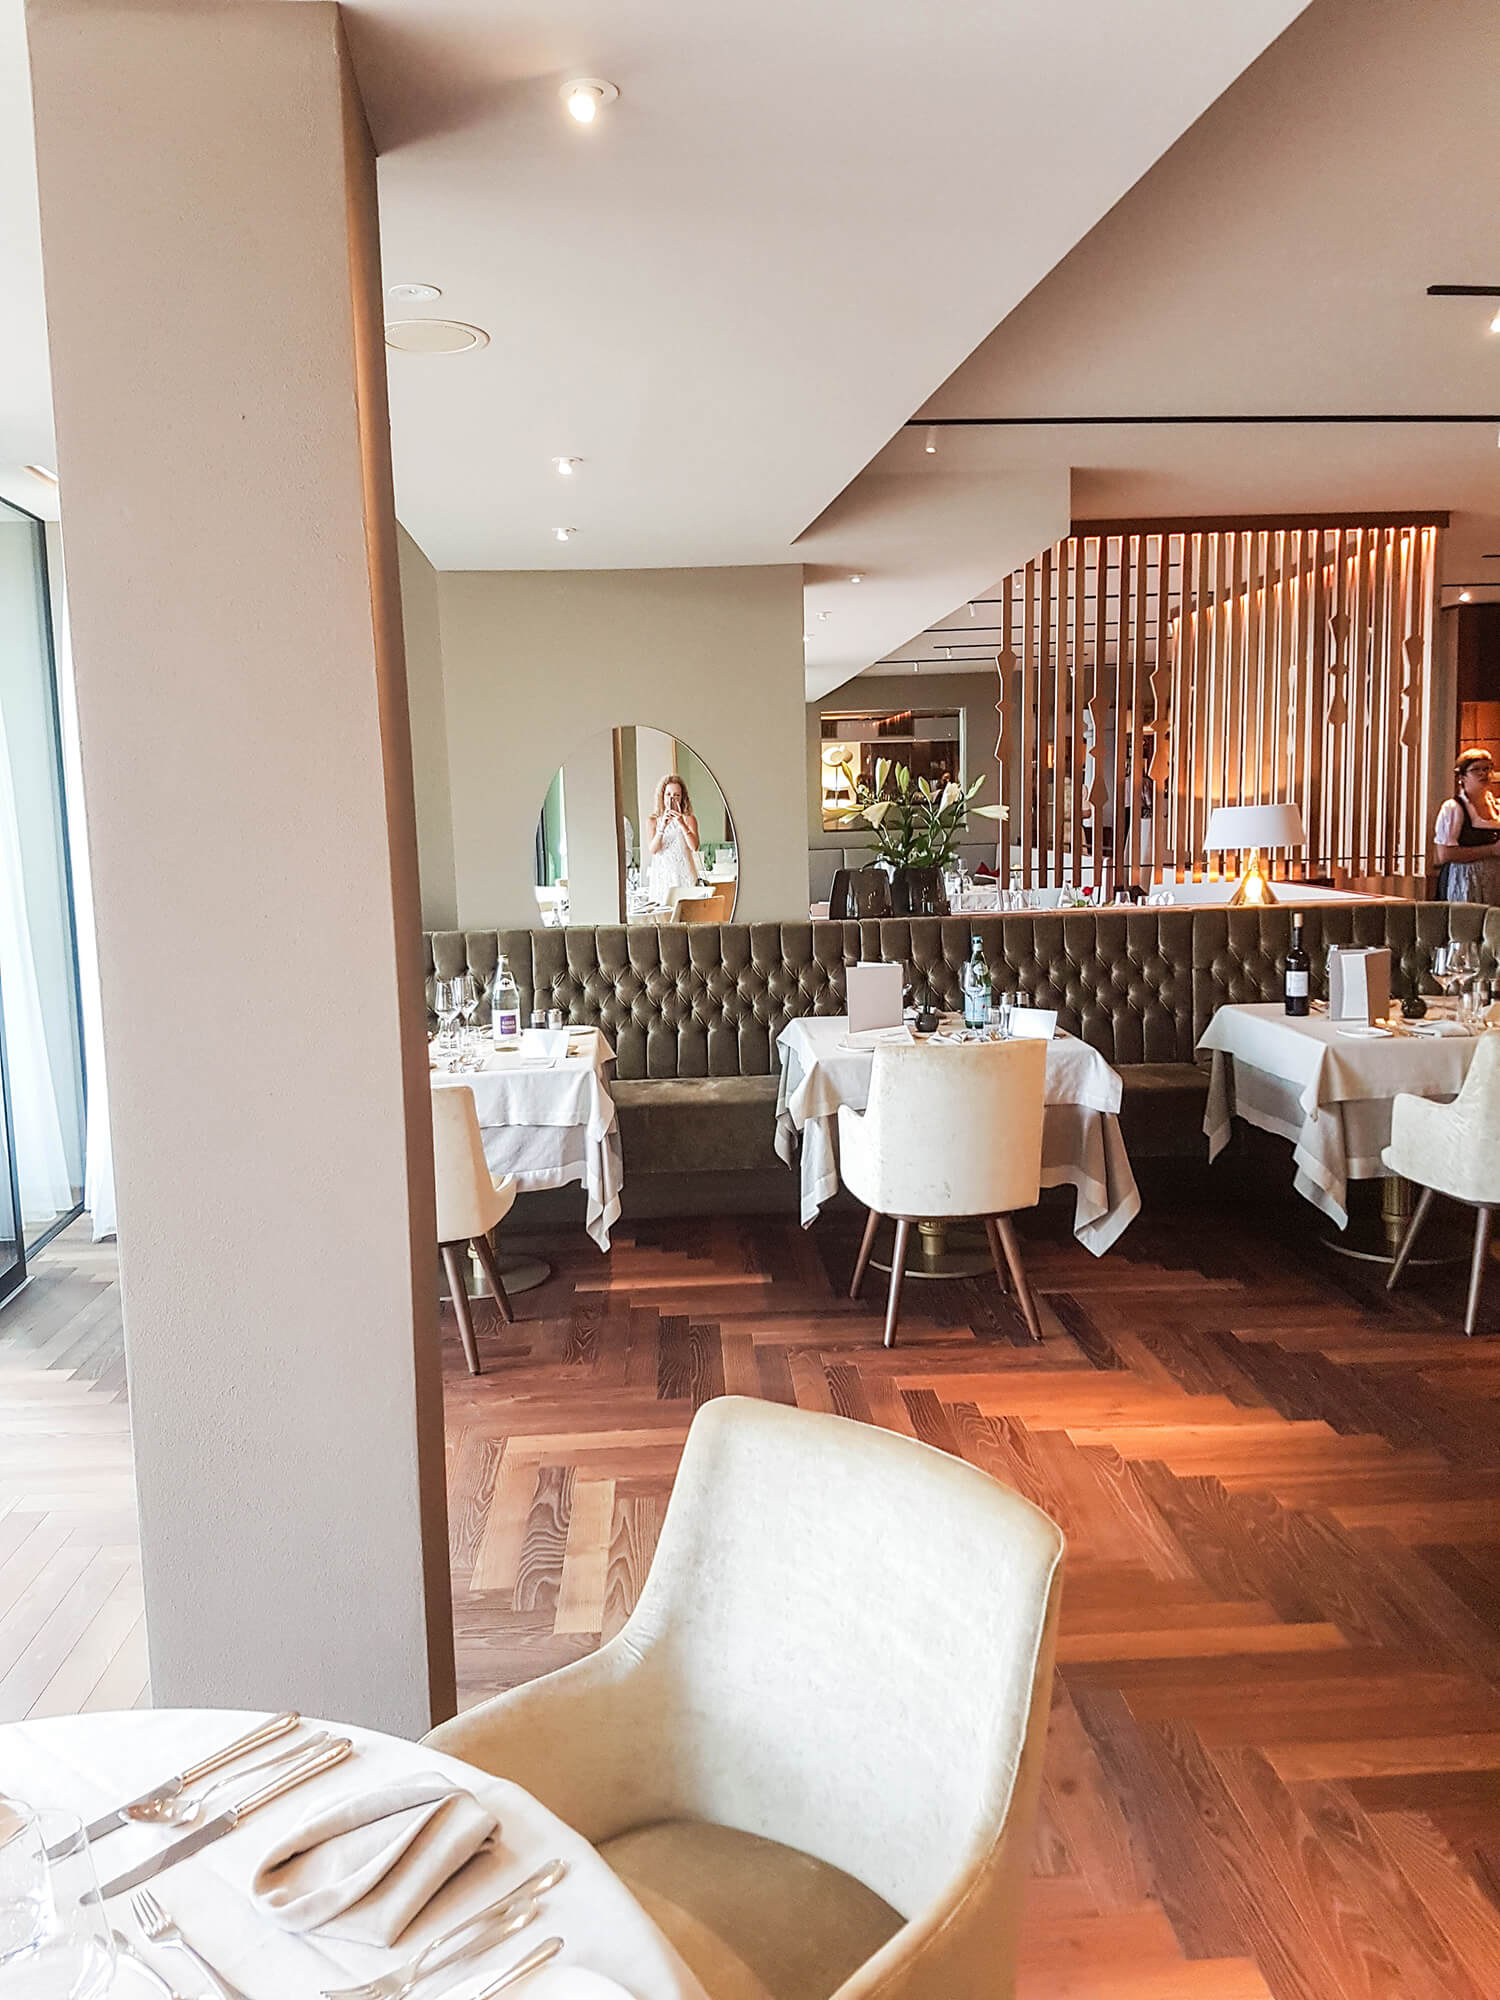 Kationette-Foodblog-Travelblog-Fine-Dining-Hotel-Hohenwart-South-Tyrol